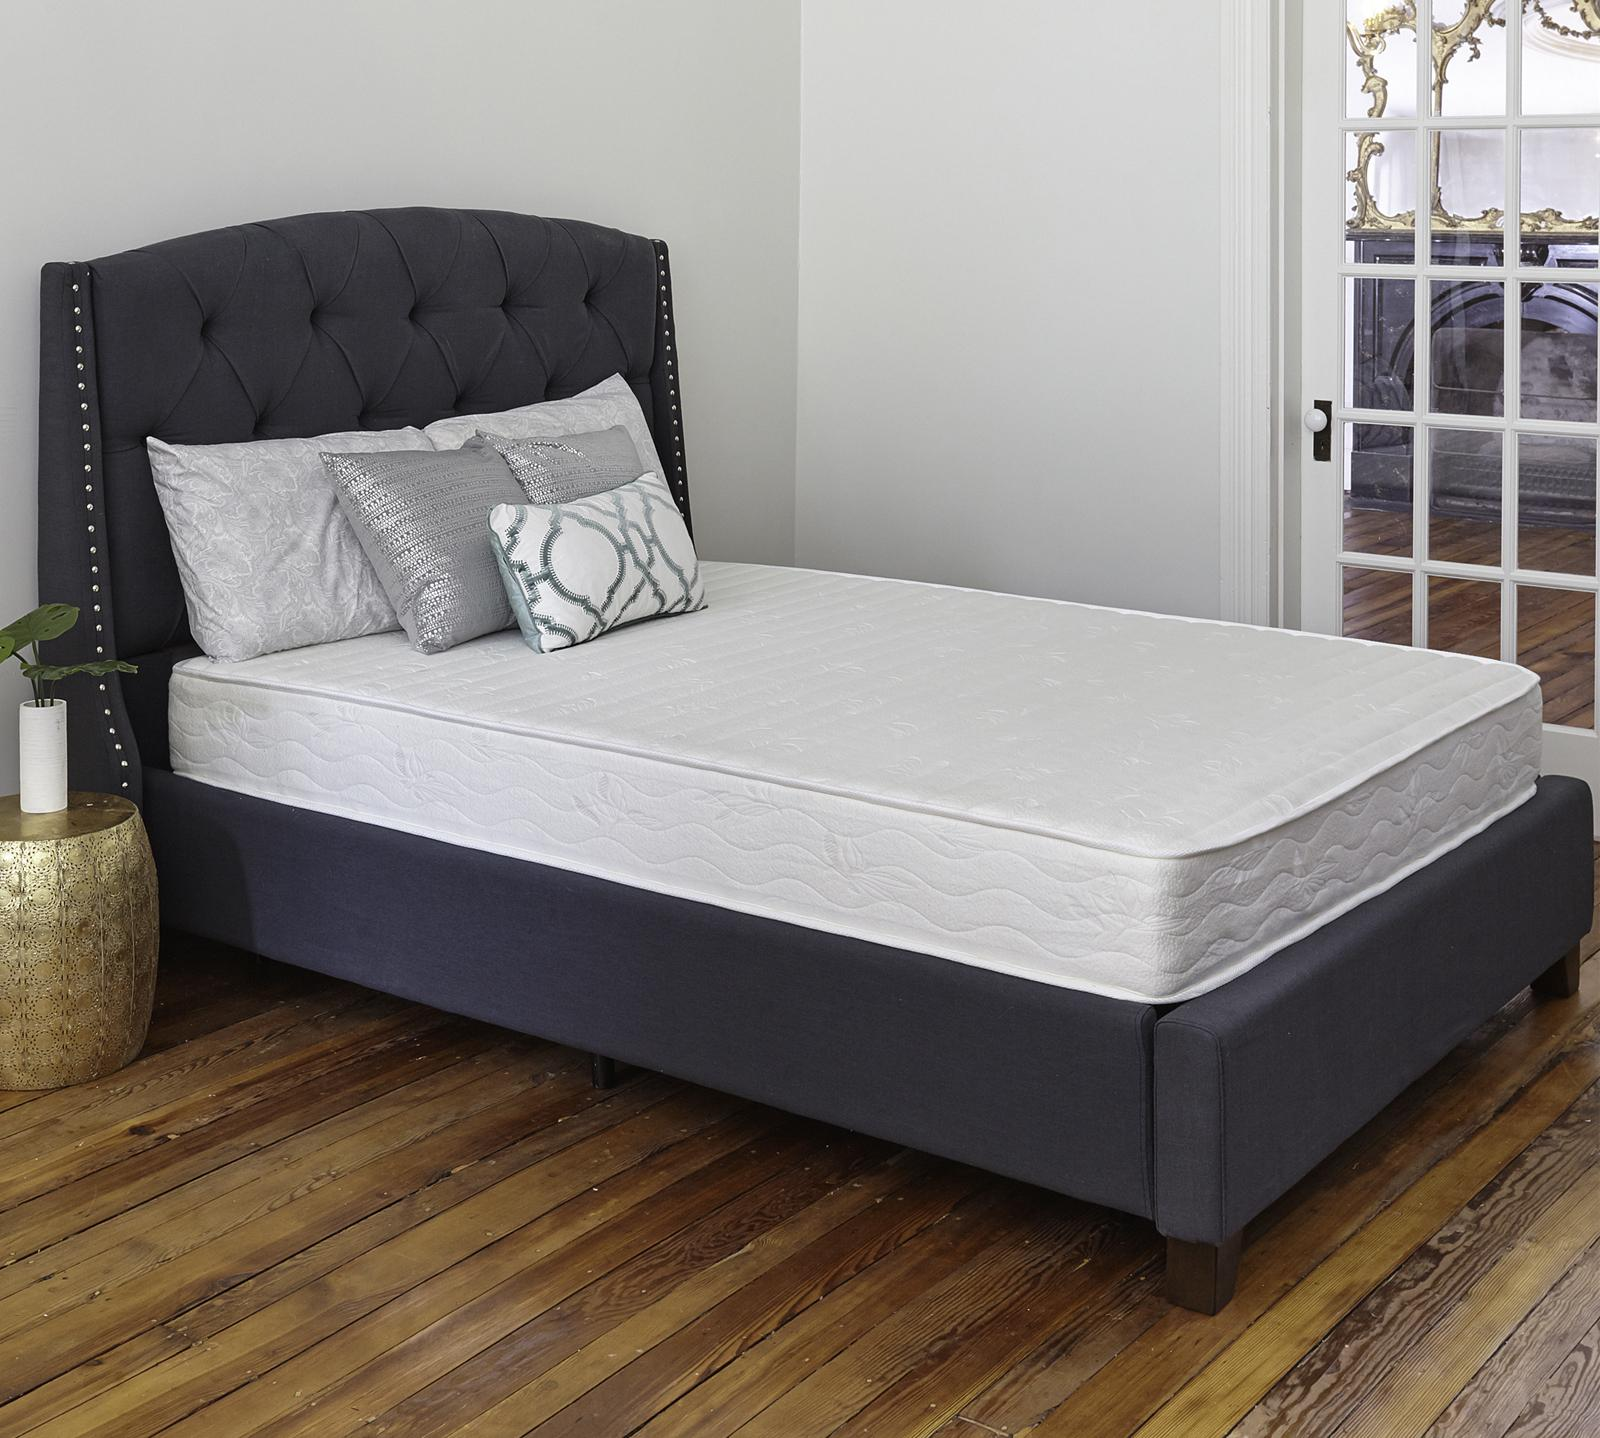 "The Perth 8"" Extra Firm Innerspring Mattress has the perfect balance of support and comfort. This mattress is constructed with individually wrapped pocketed coils that distribute your weight evenly and support every inch of your body. These coils even help to prevent motion transfer so you do not wake up your partner during the night. The foam layer above the coils ensures total comfort throughout the night providing faster and longer sleep."